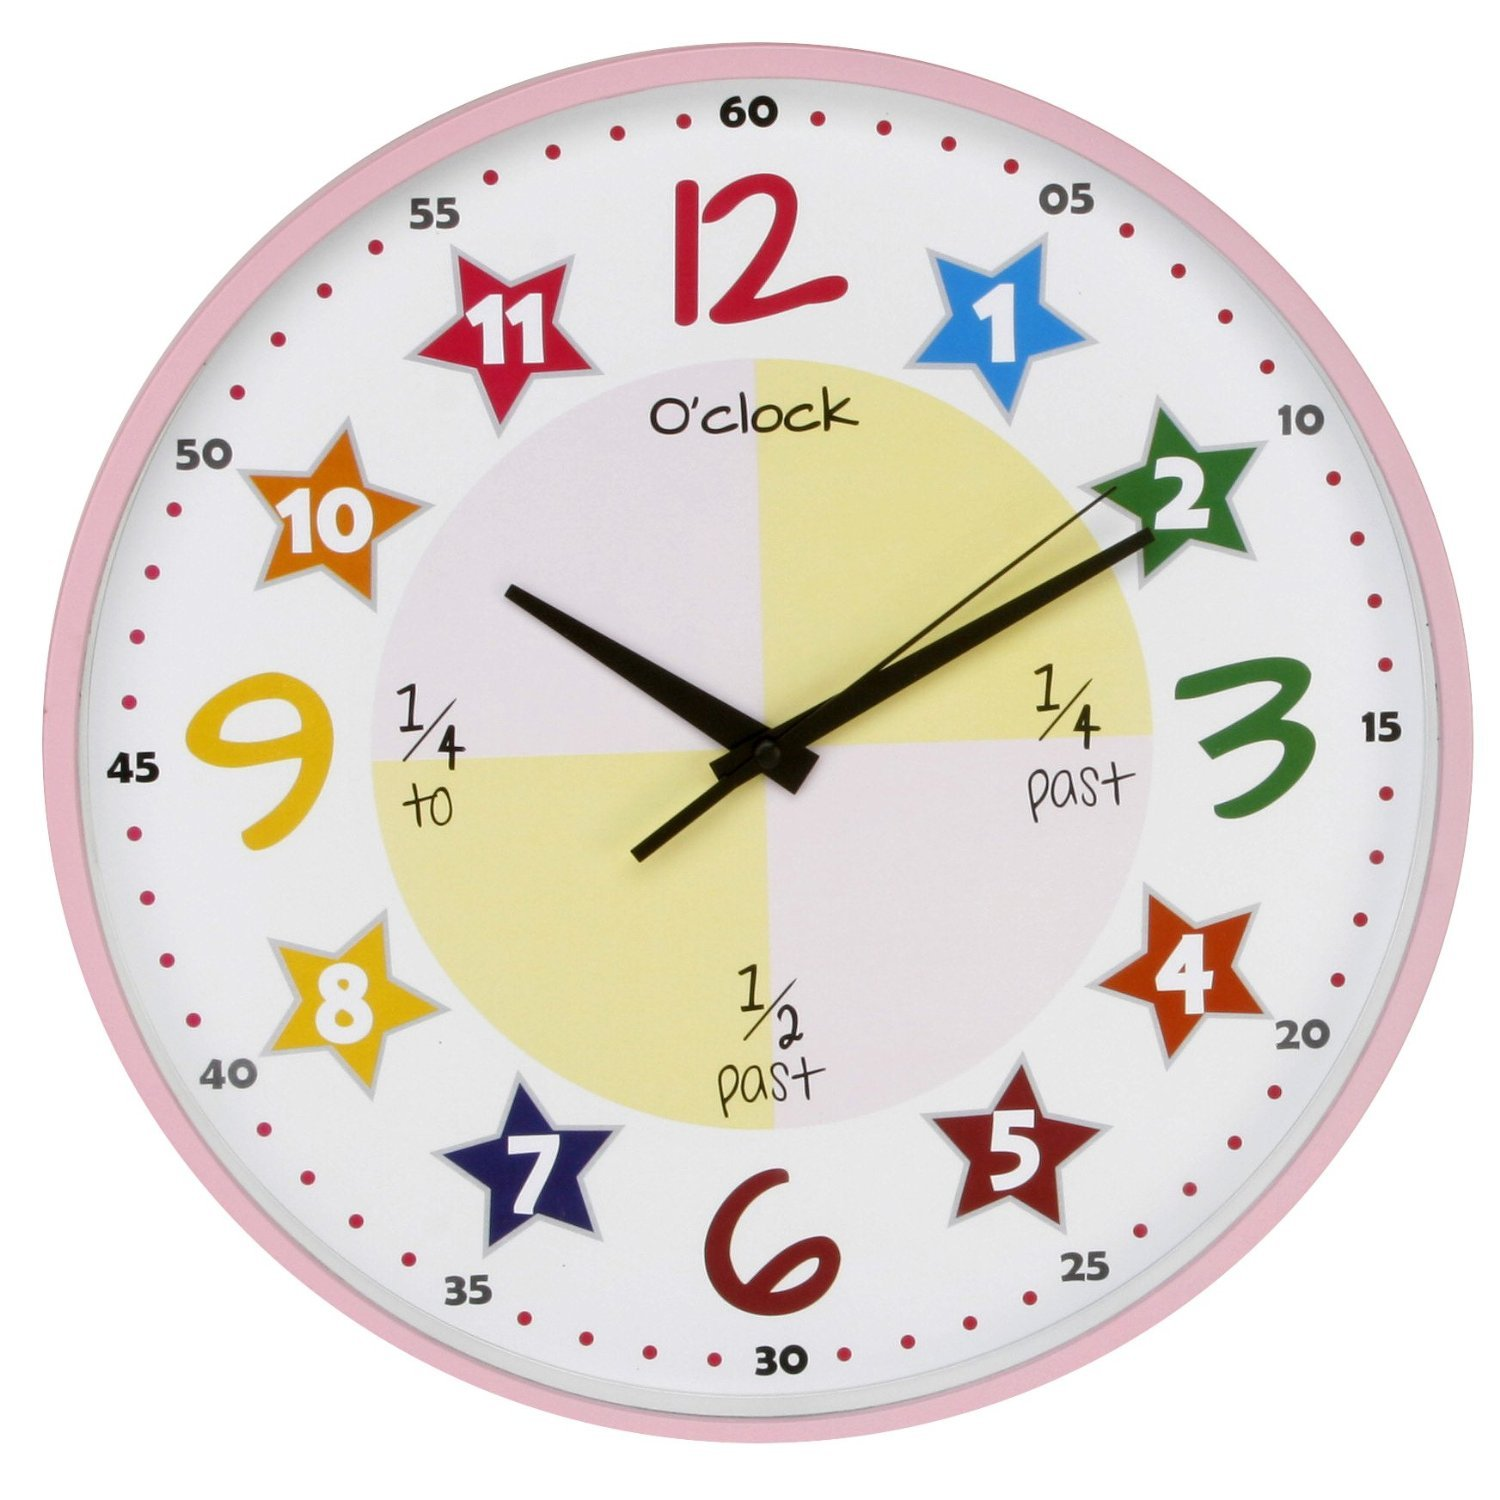 Pictures of Clocks For Teaching Time Teach The Time Wall Clock